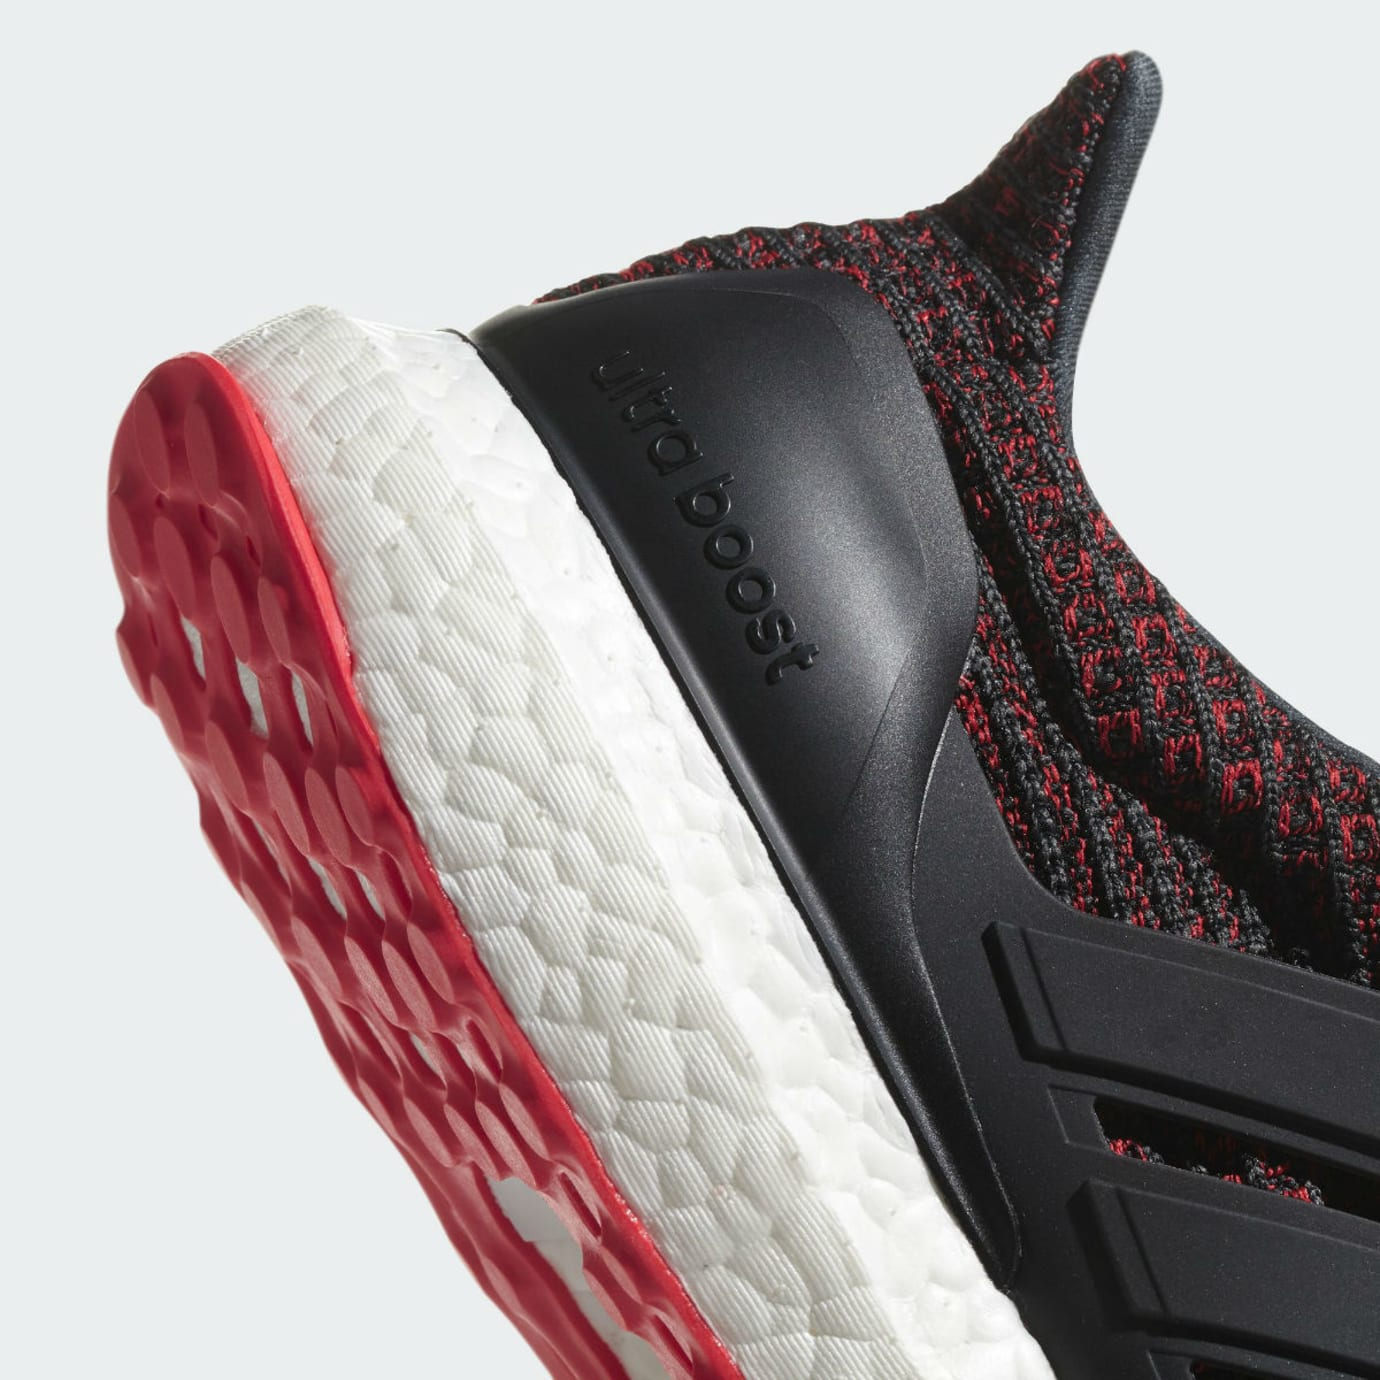 96776782c1a98 Adidas Ultra Boost 4.0 Chinese New Year Release Date BB6173 Midsole